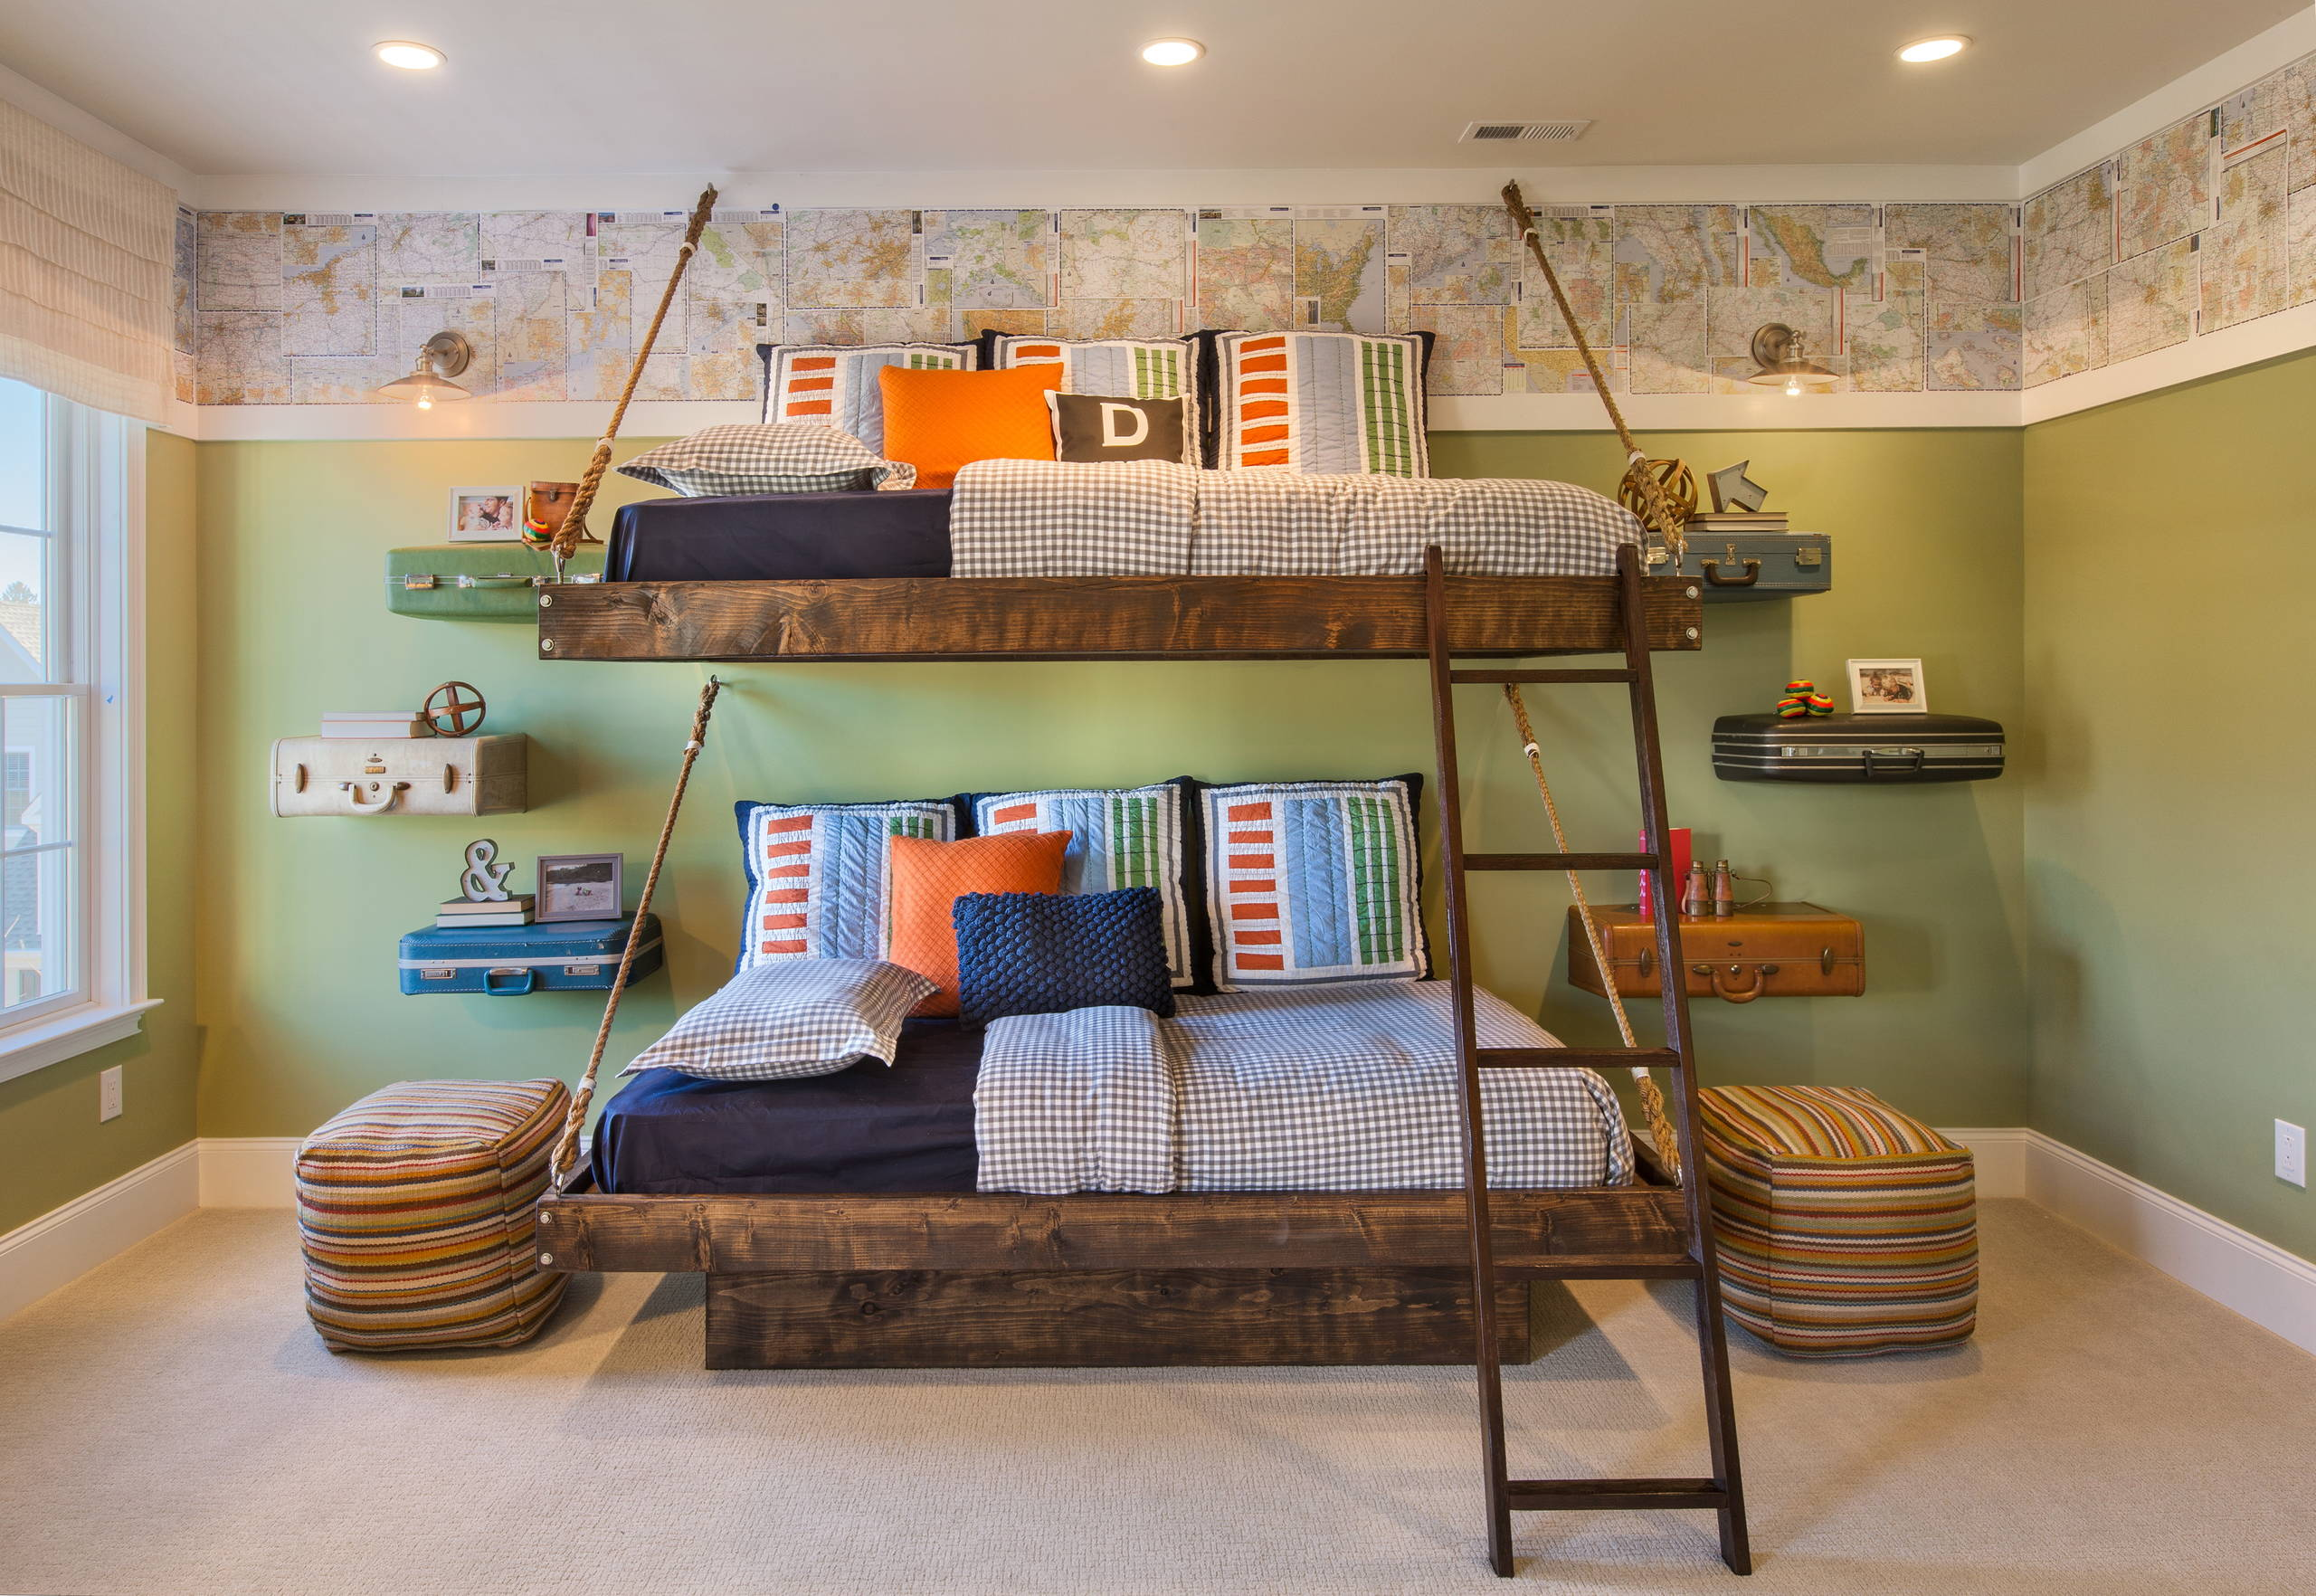 15 Charming Rustic Kids Room Designs That Strike With